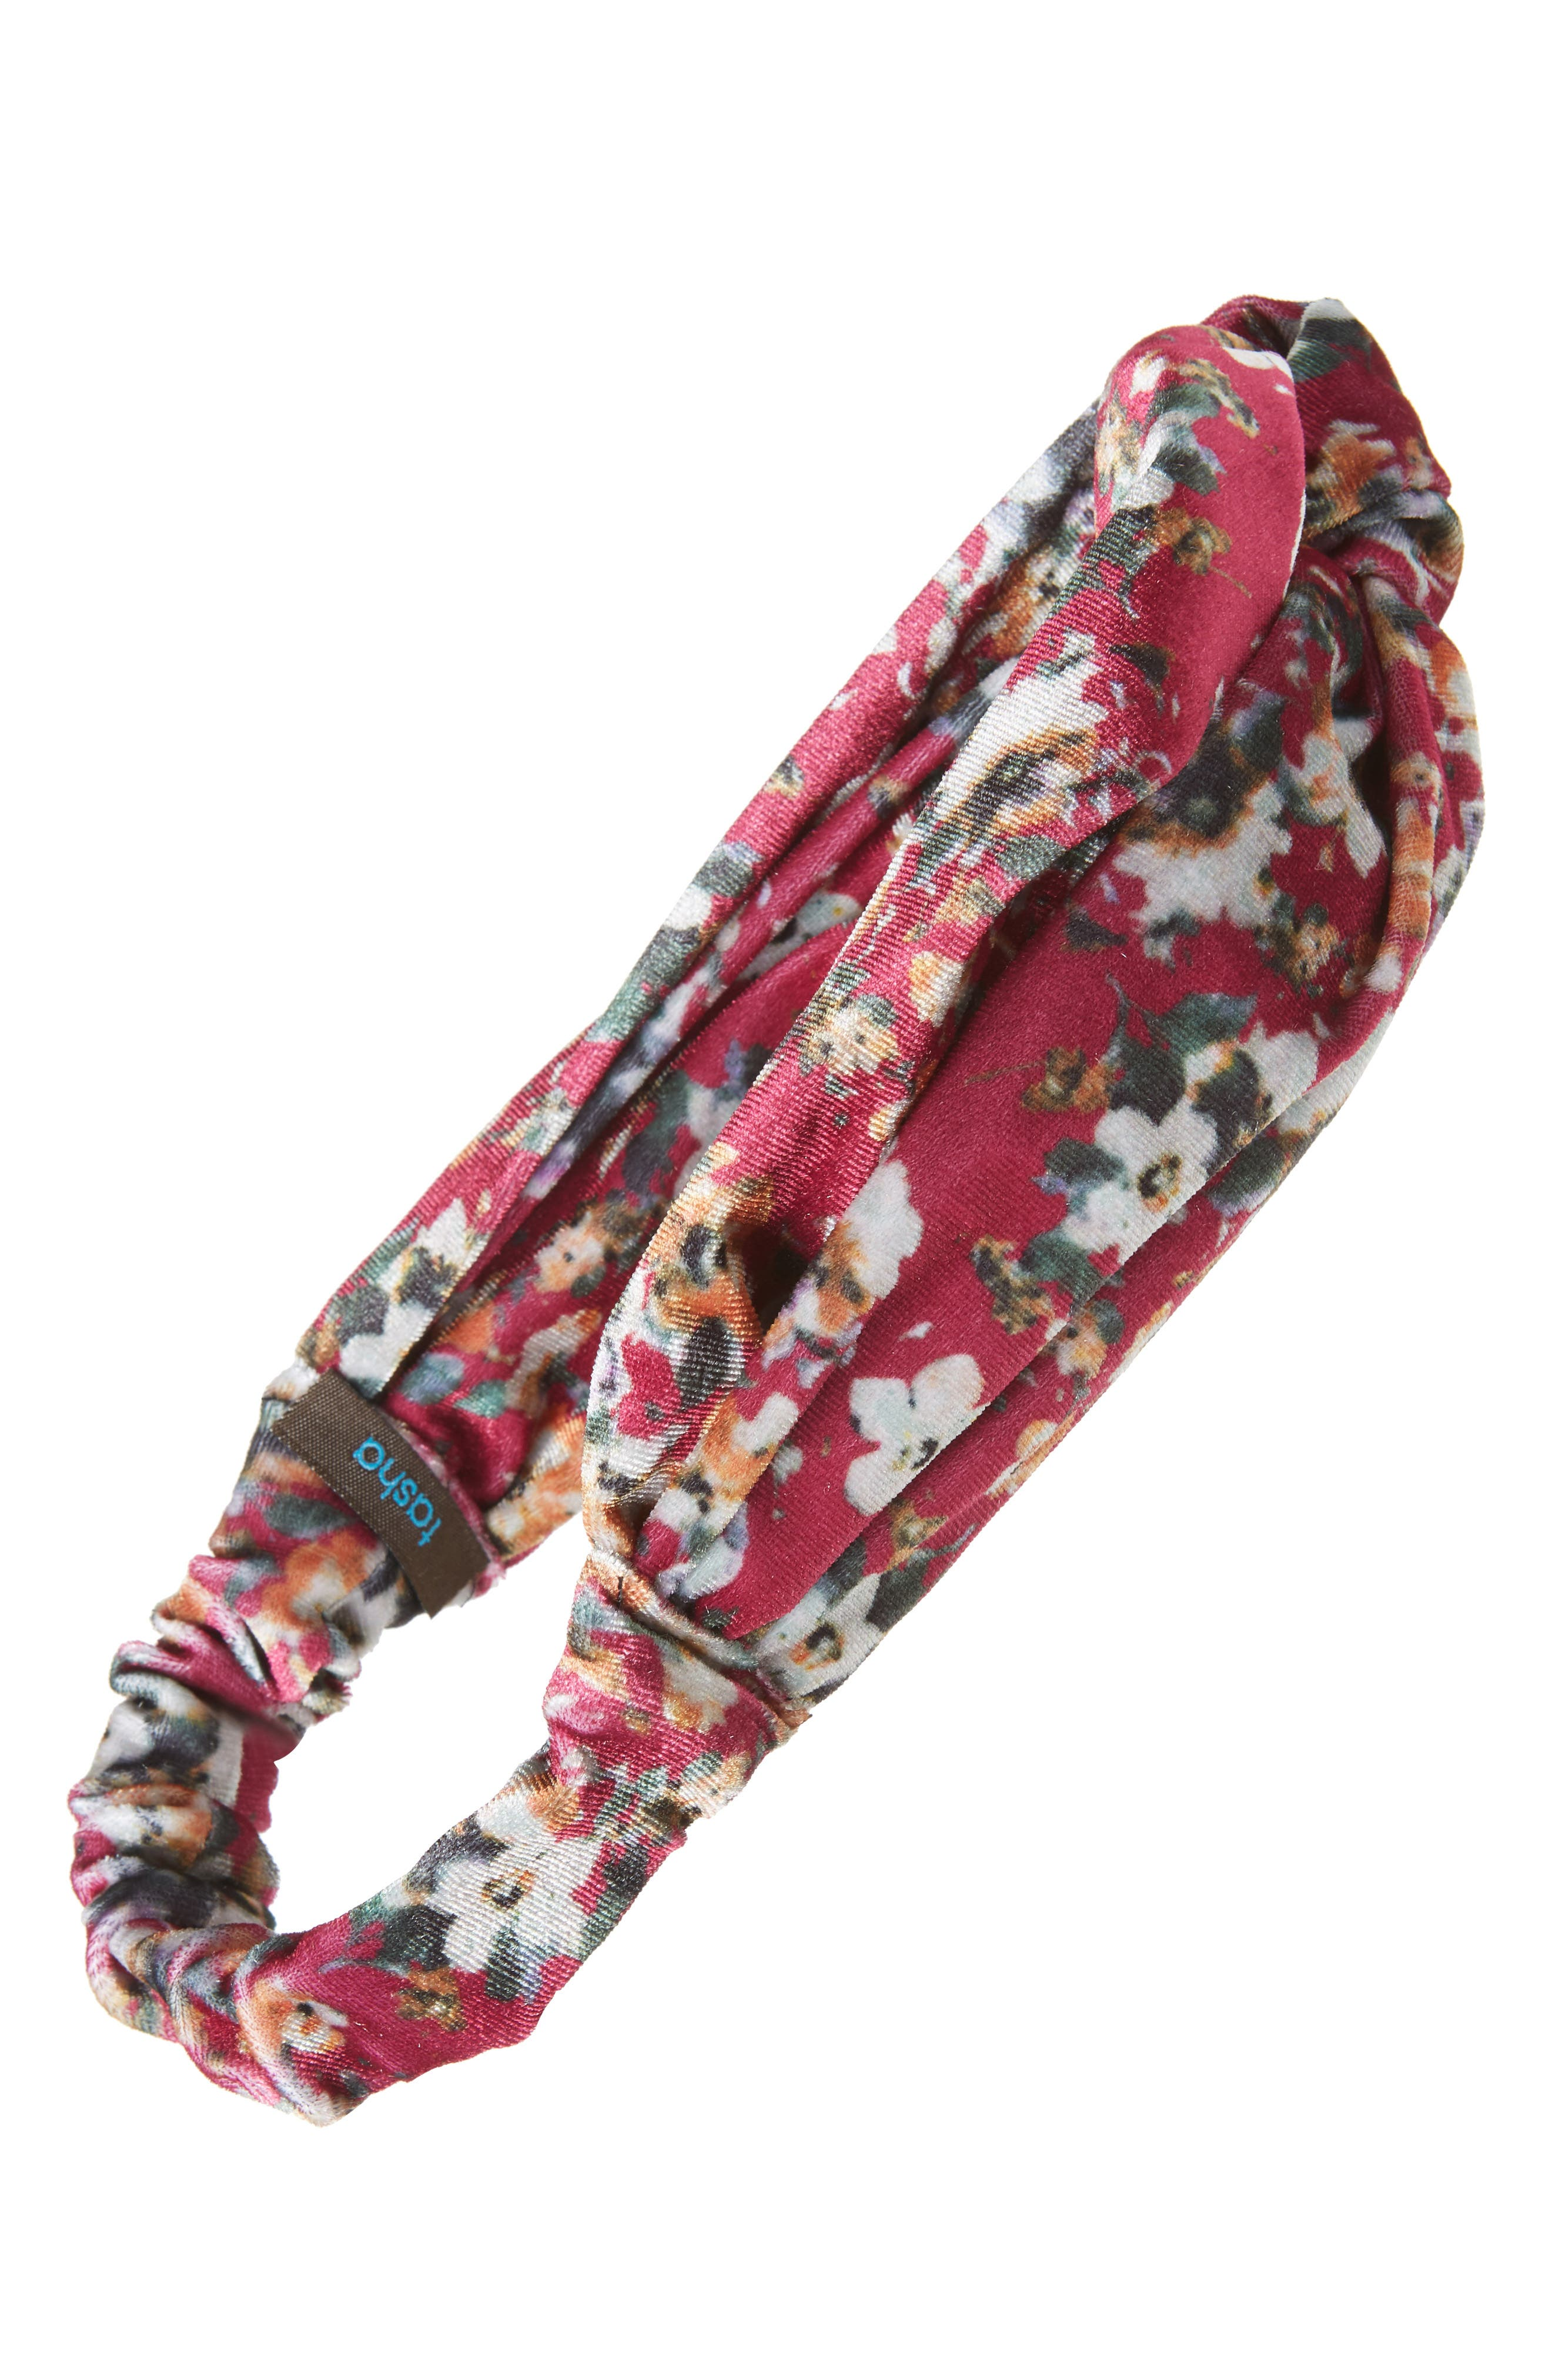 TASHA Floral Velvet Knotted Head Wrap, Main, color, RED